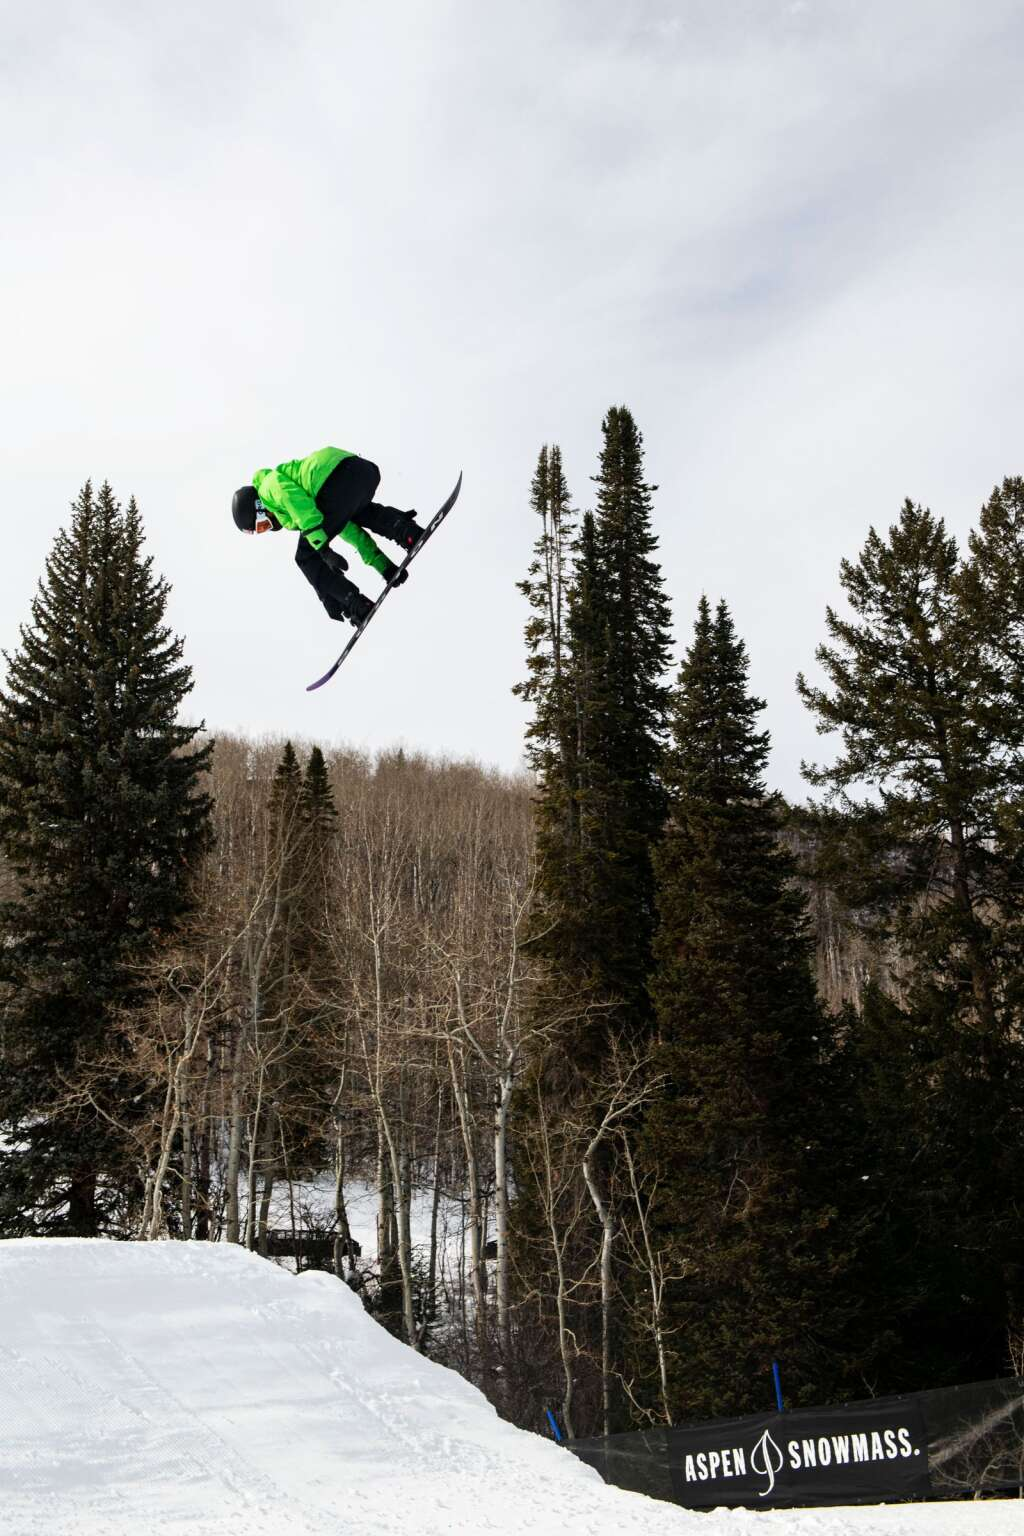 American snowboarder Red Gerard gets air off of the second jump on the slopestyle course at X Games 2021 at Buttermilk on Thursday, Jan. 28, 2021. (Kelsey Brunner/The Aspen Times)